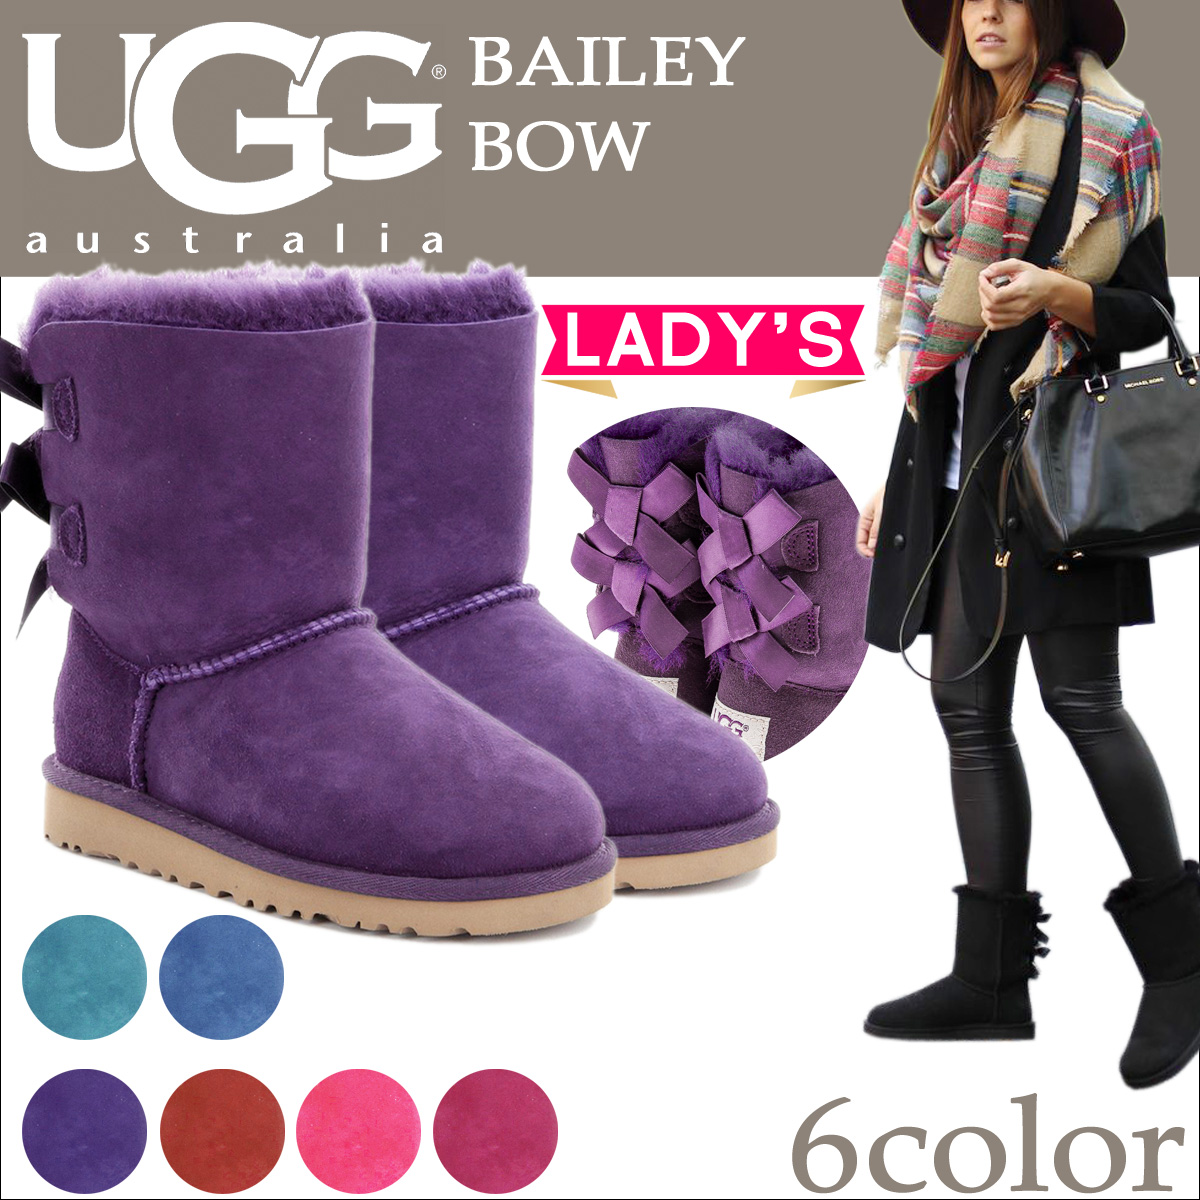 ugg boots with bows women nz